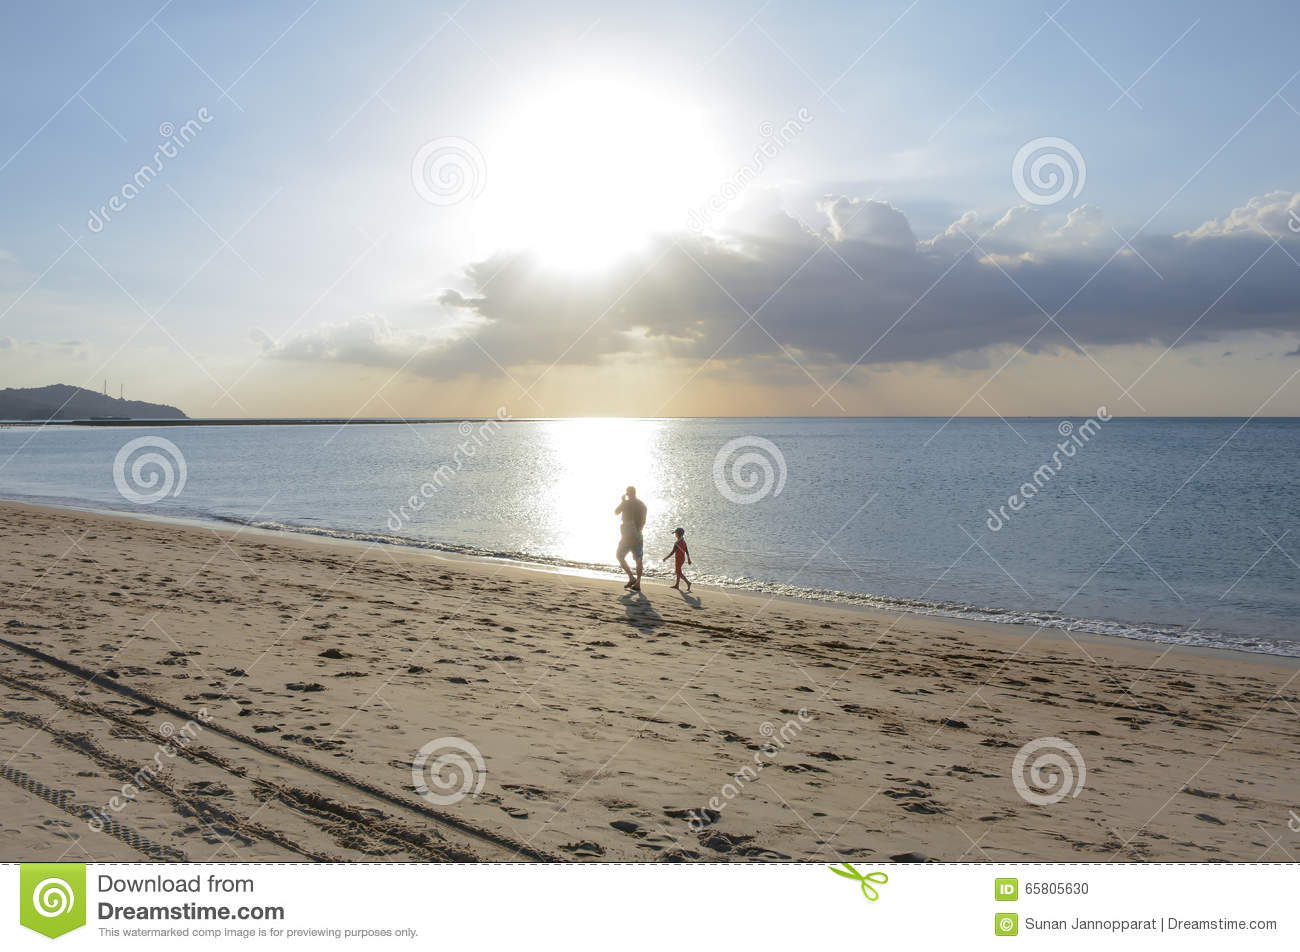 Father and the boy walking on the beach